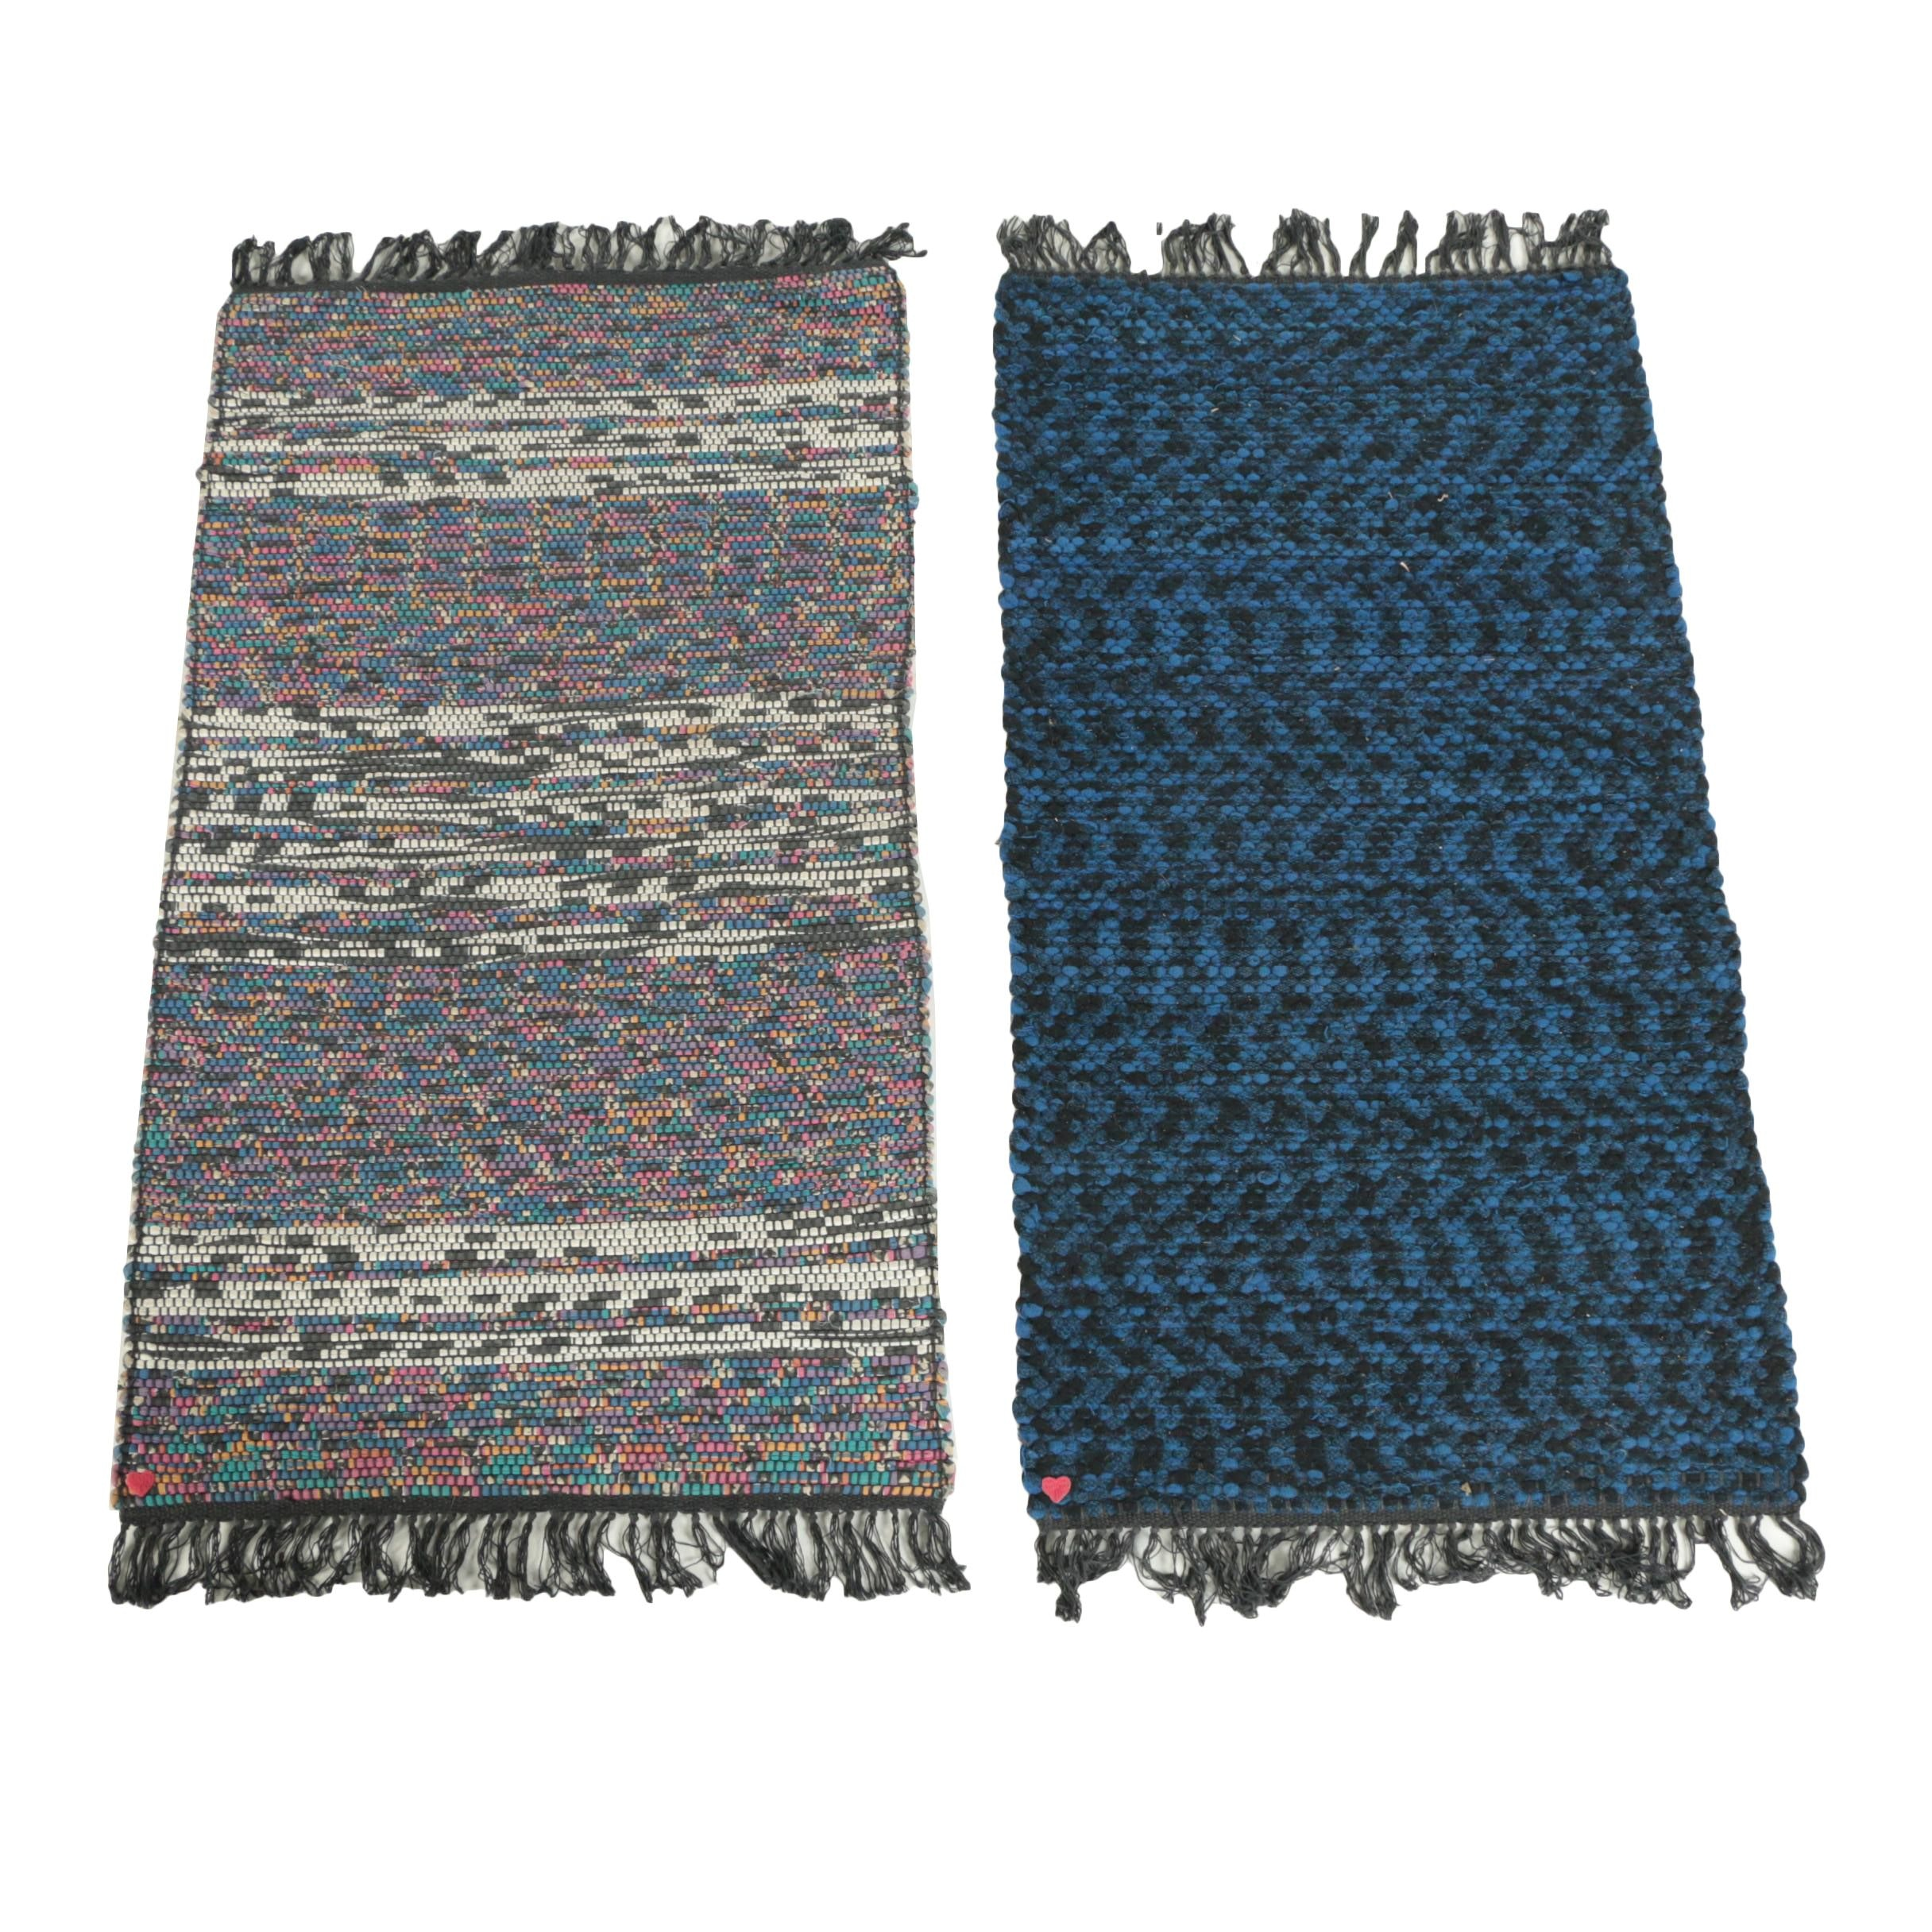 Handwoven Accent Rag-Rugs by Vermont Rugmakers